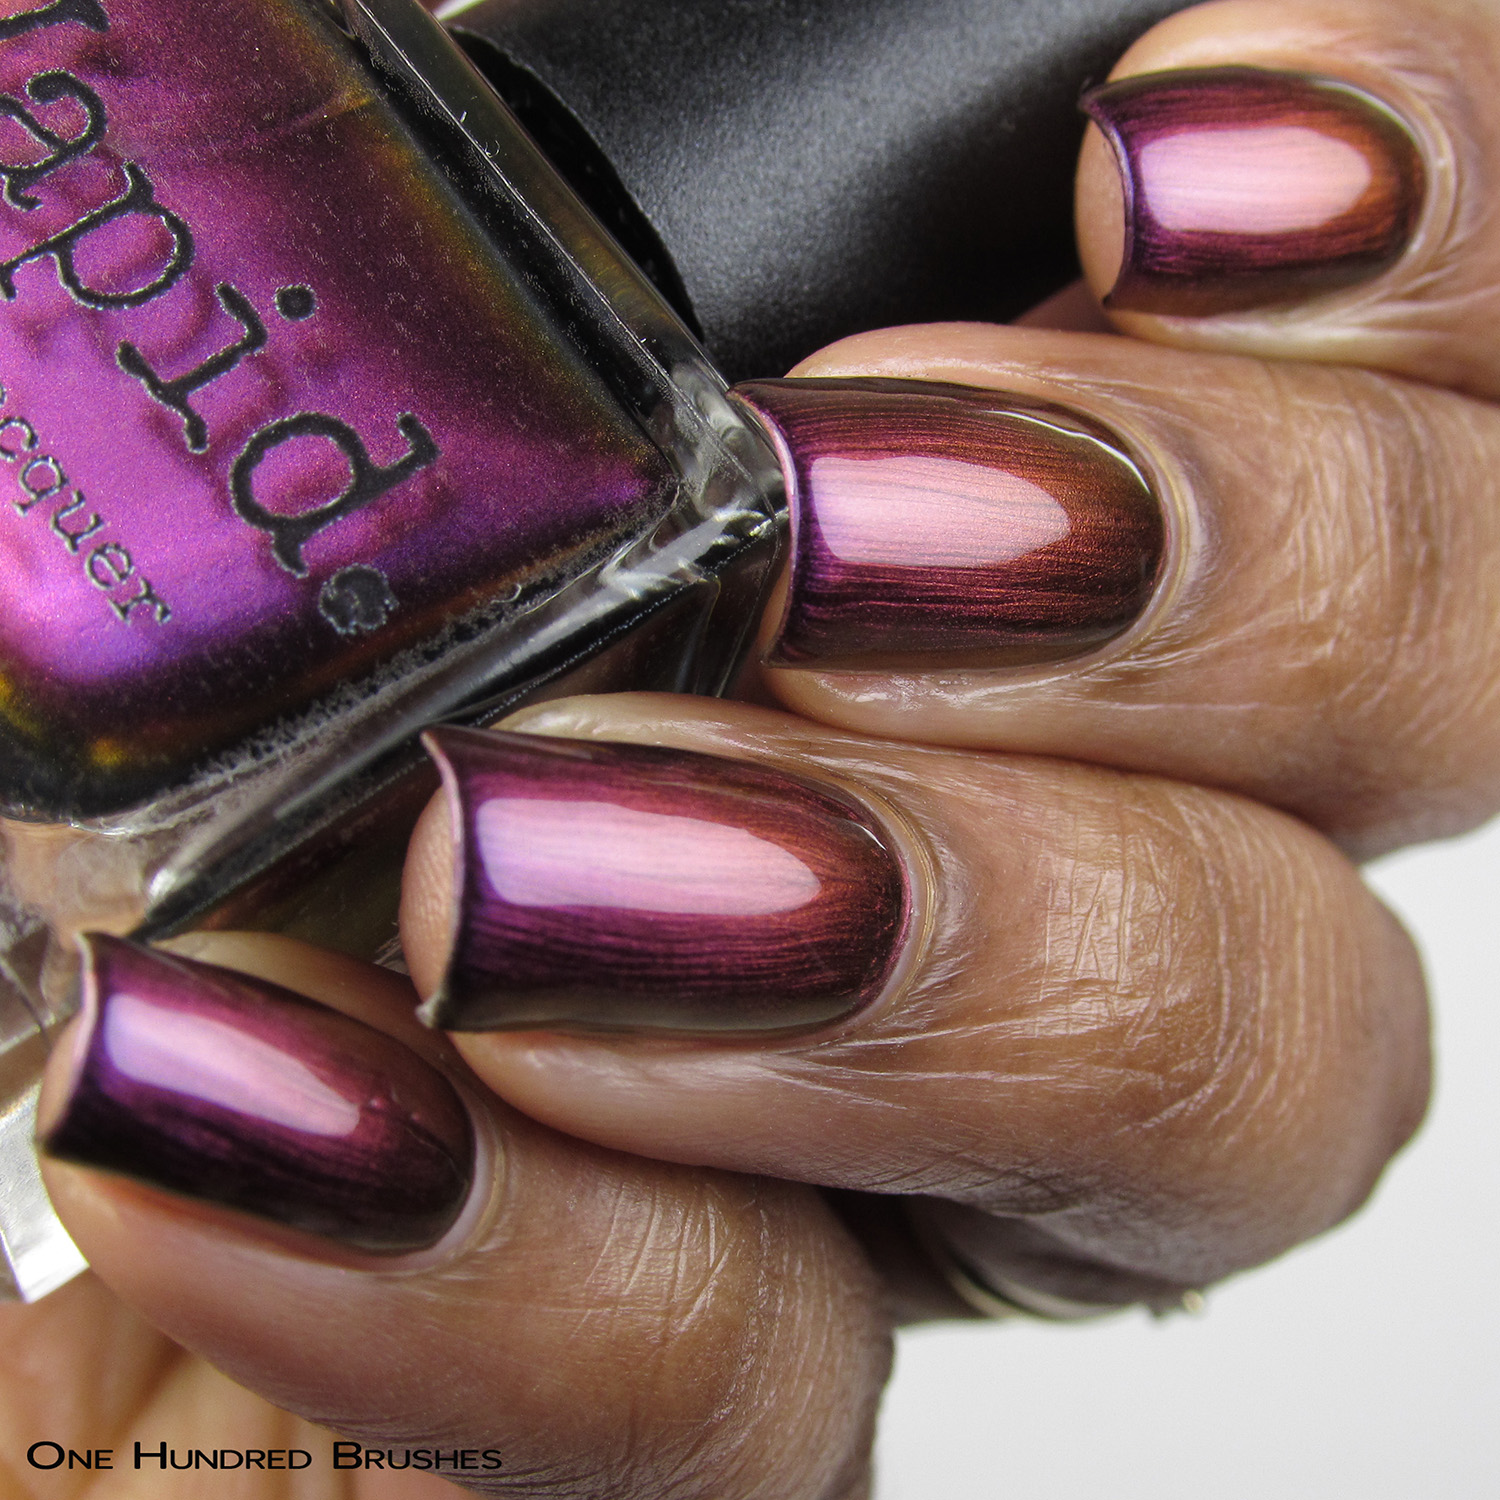 Pandora's Cluster - Cosmos Collection 2019 - Vapid Lacquer